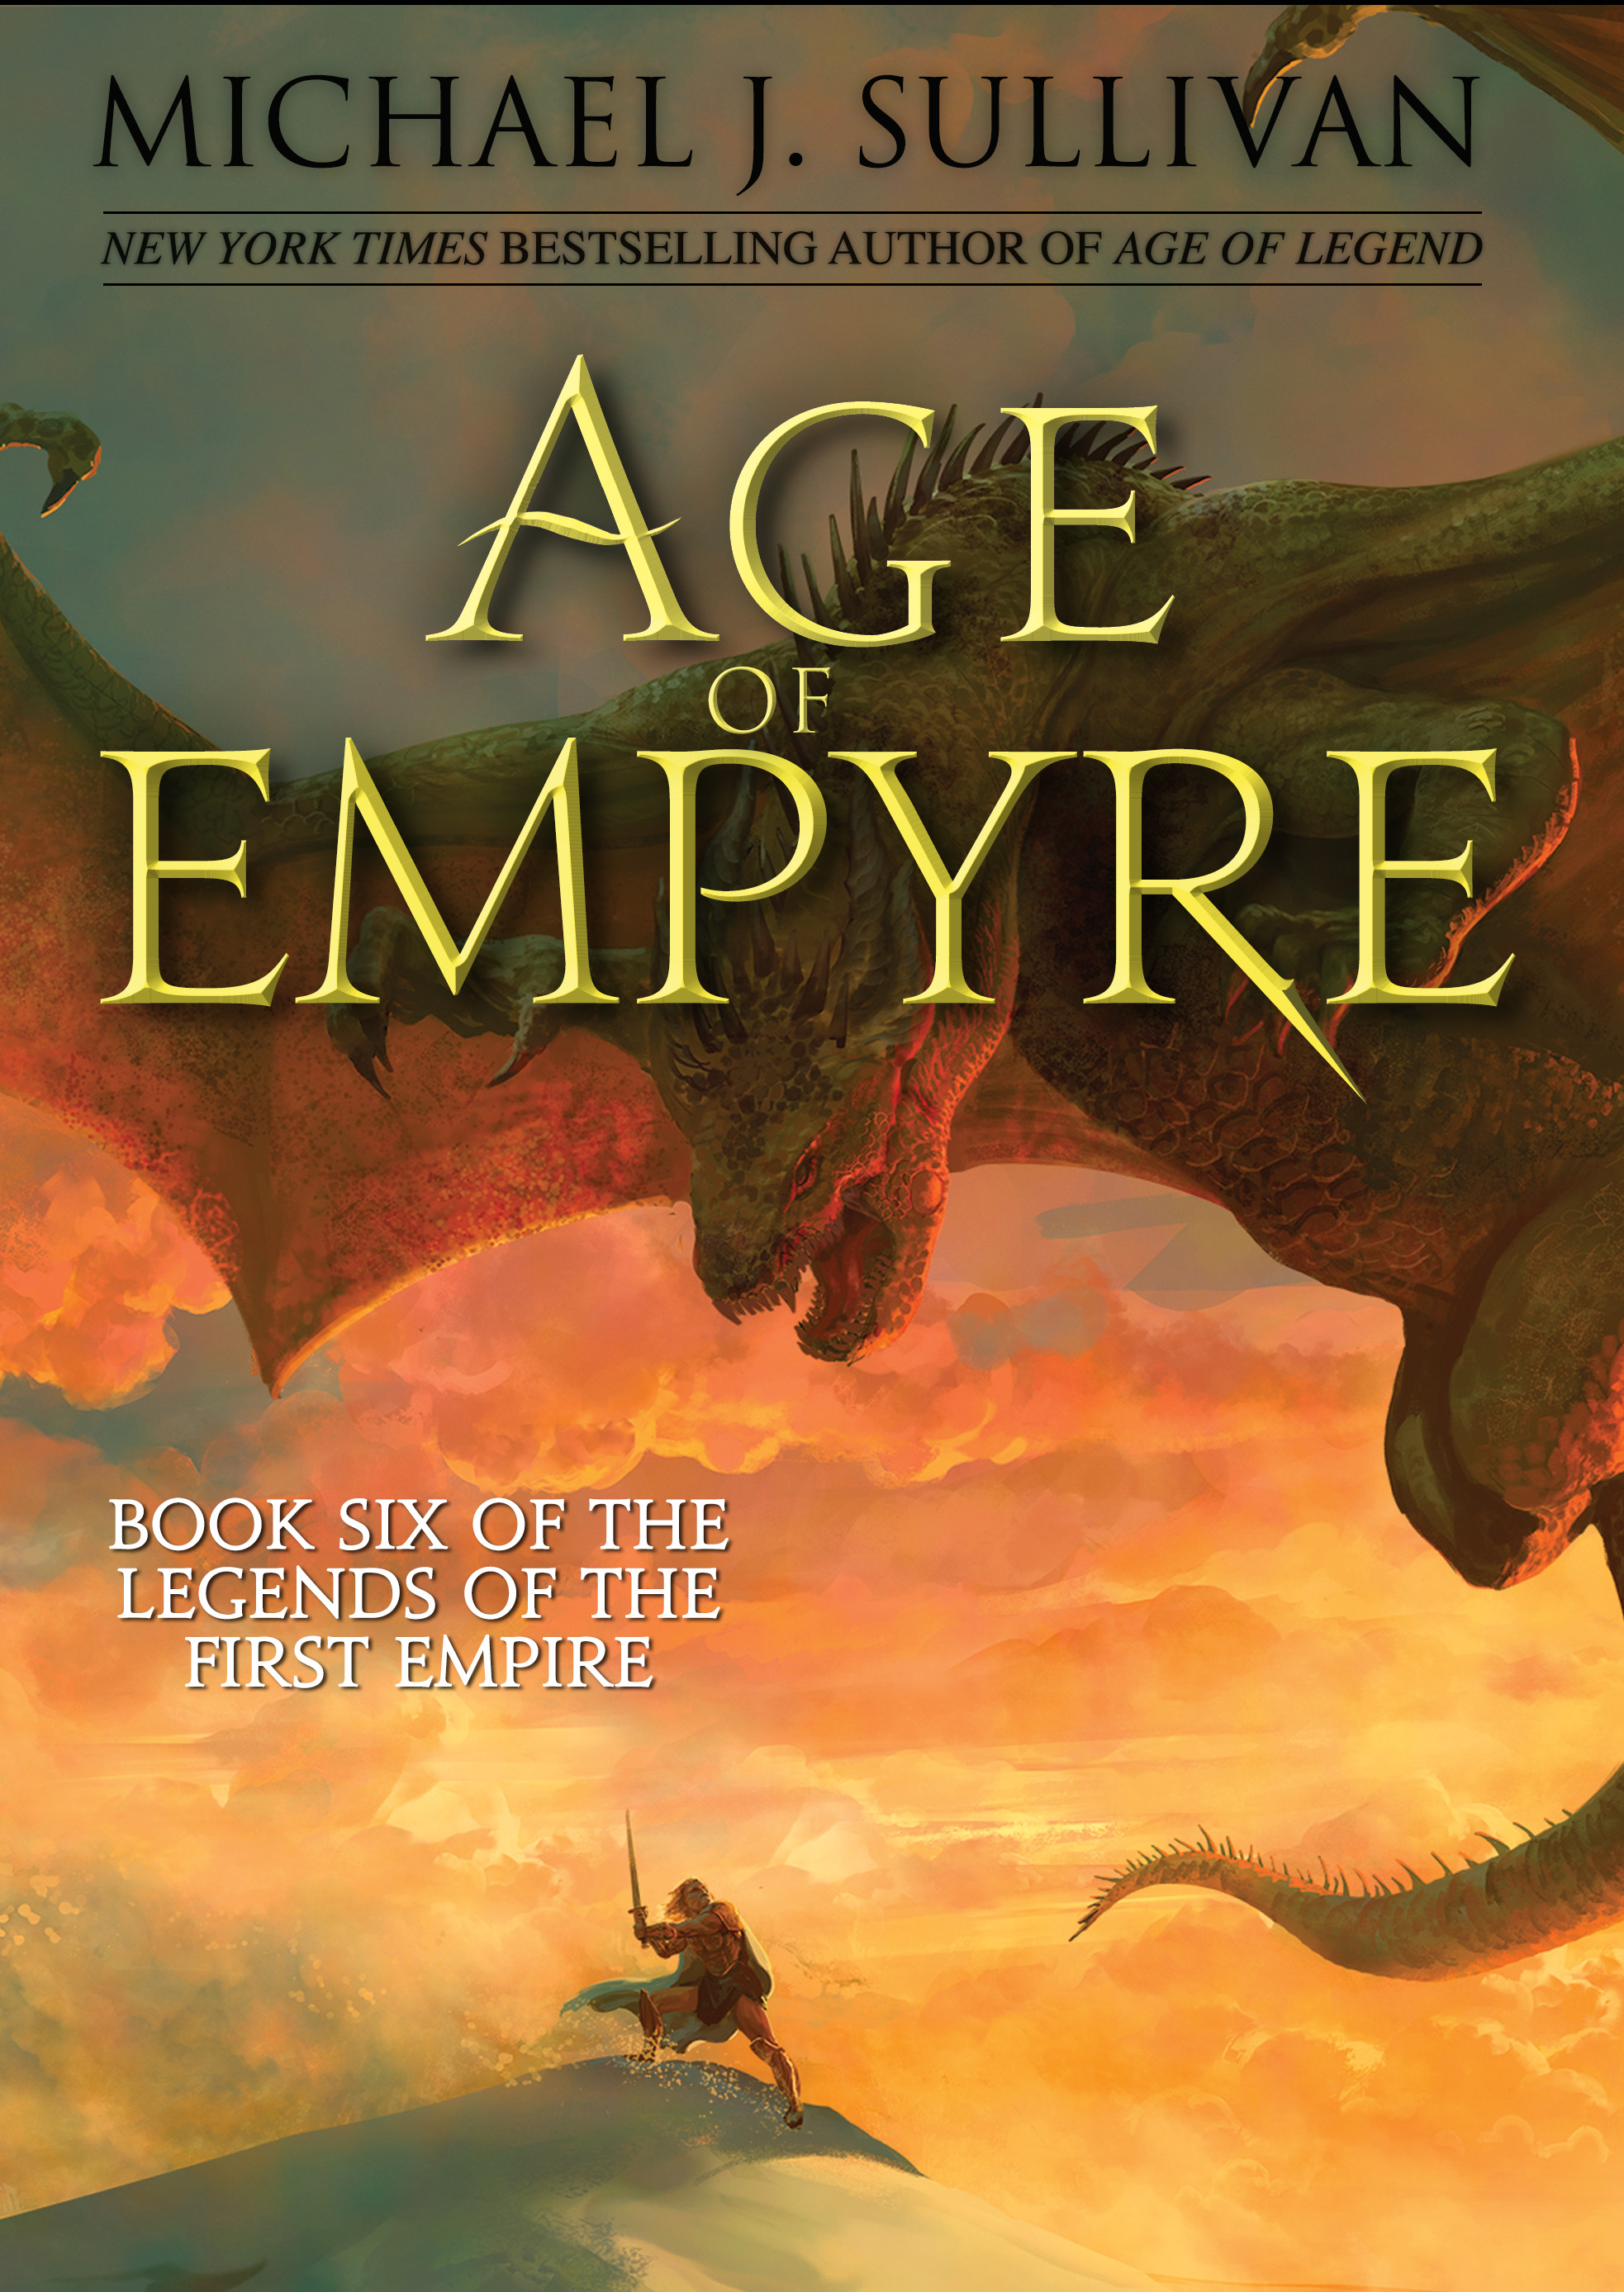 Michael J. Sullivan - The Legends of the First Empire 6 - Age of Empyre